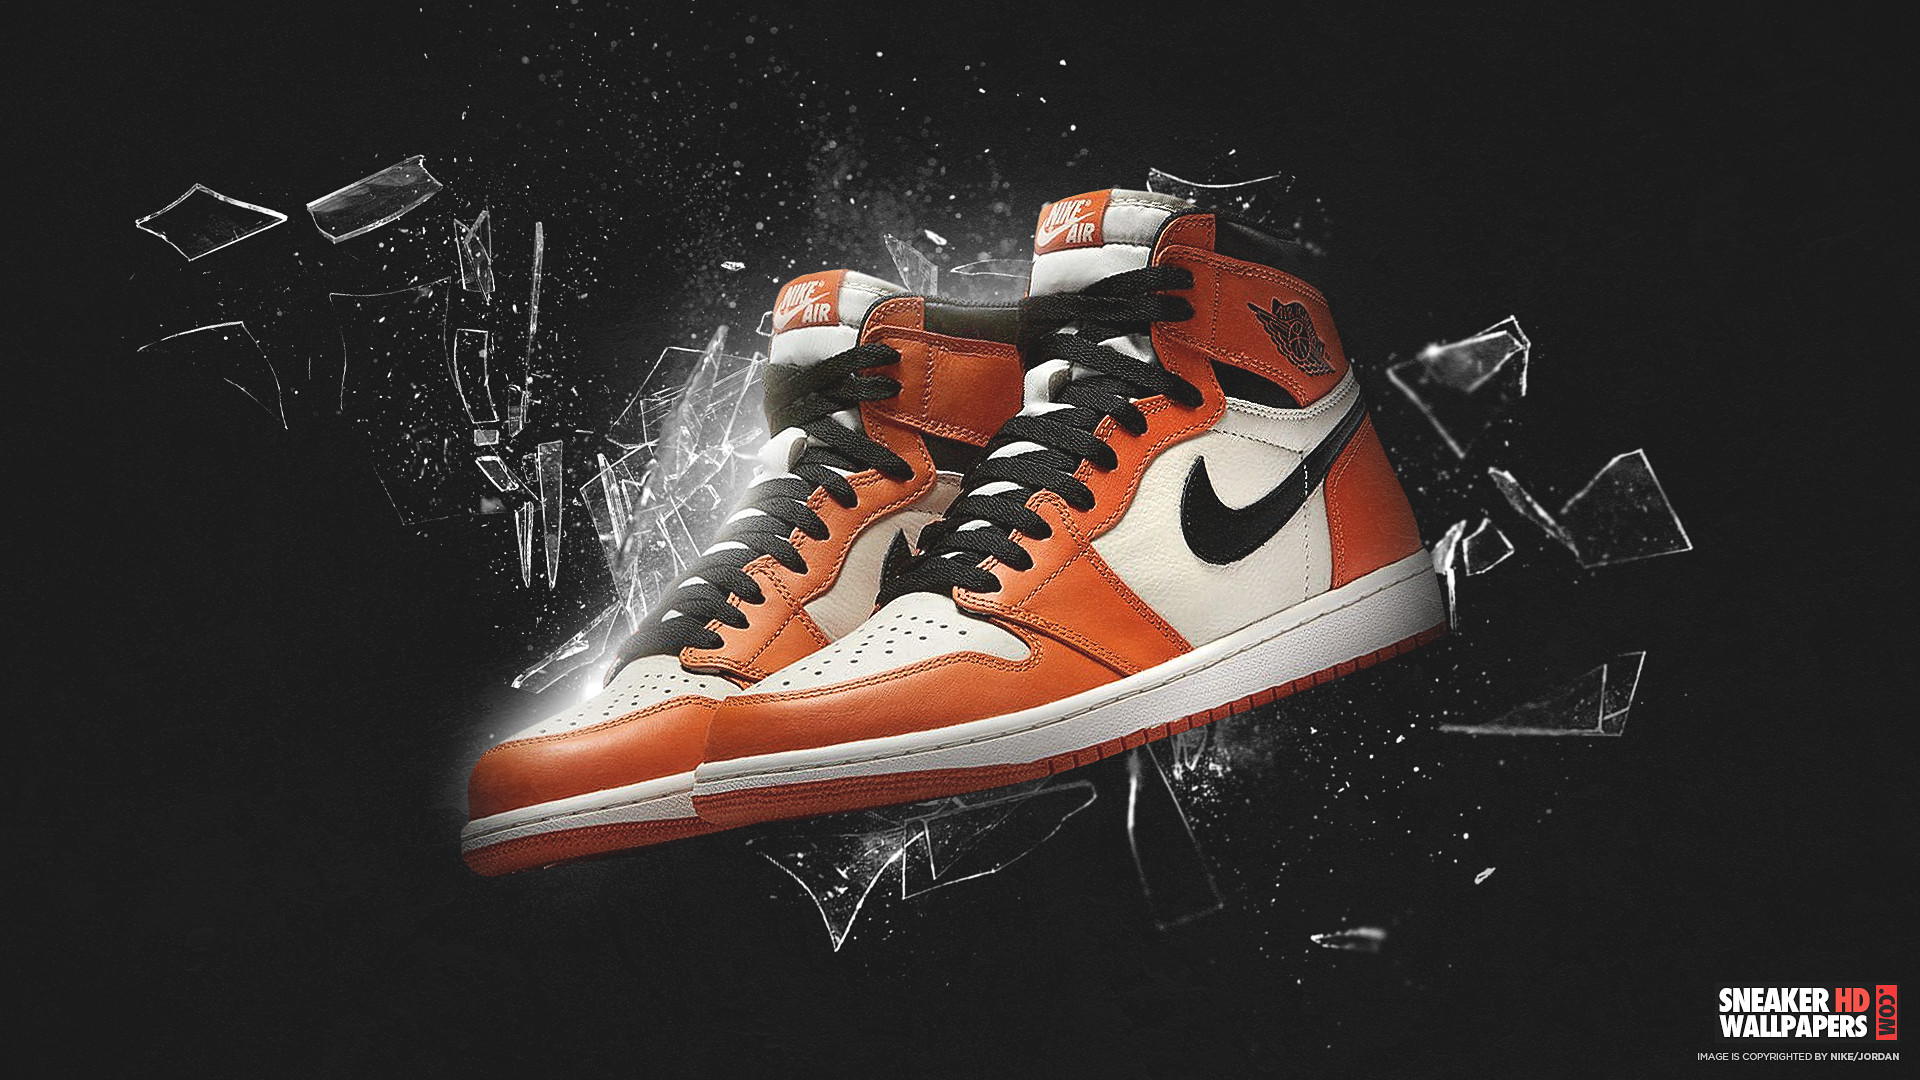 1920x1200 Cool Nike Wallpapers For Mobile 1